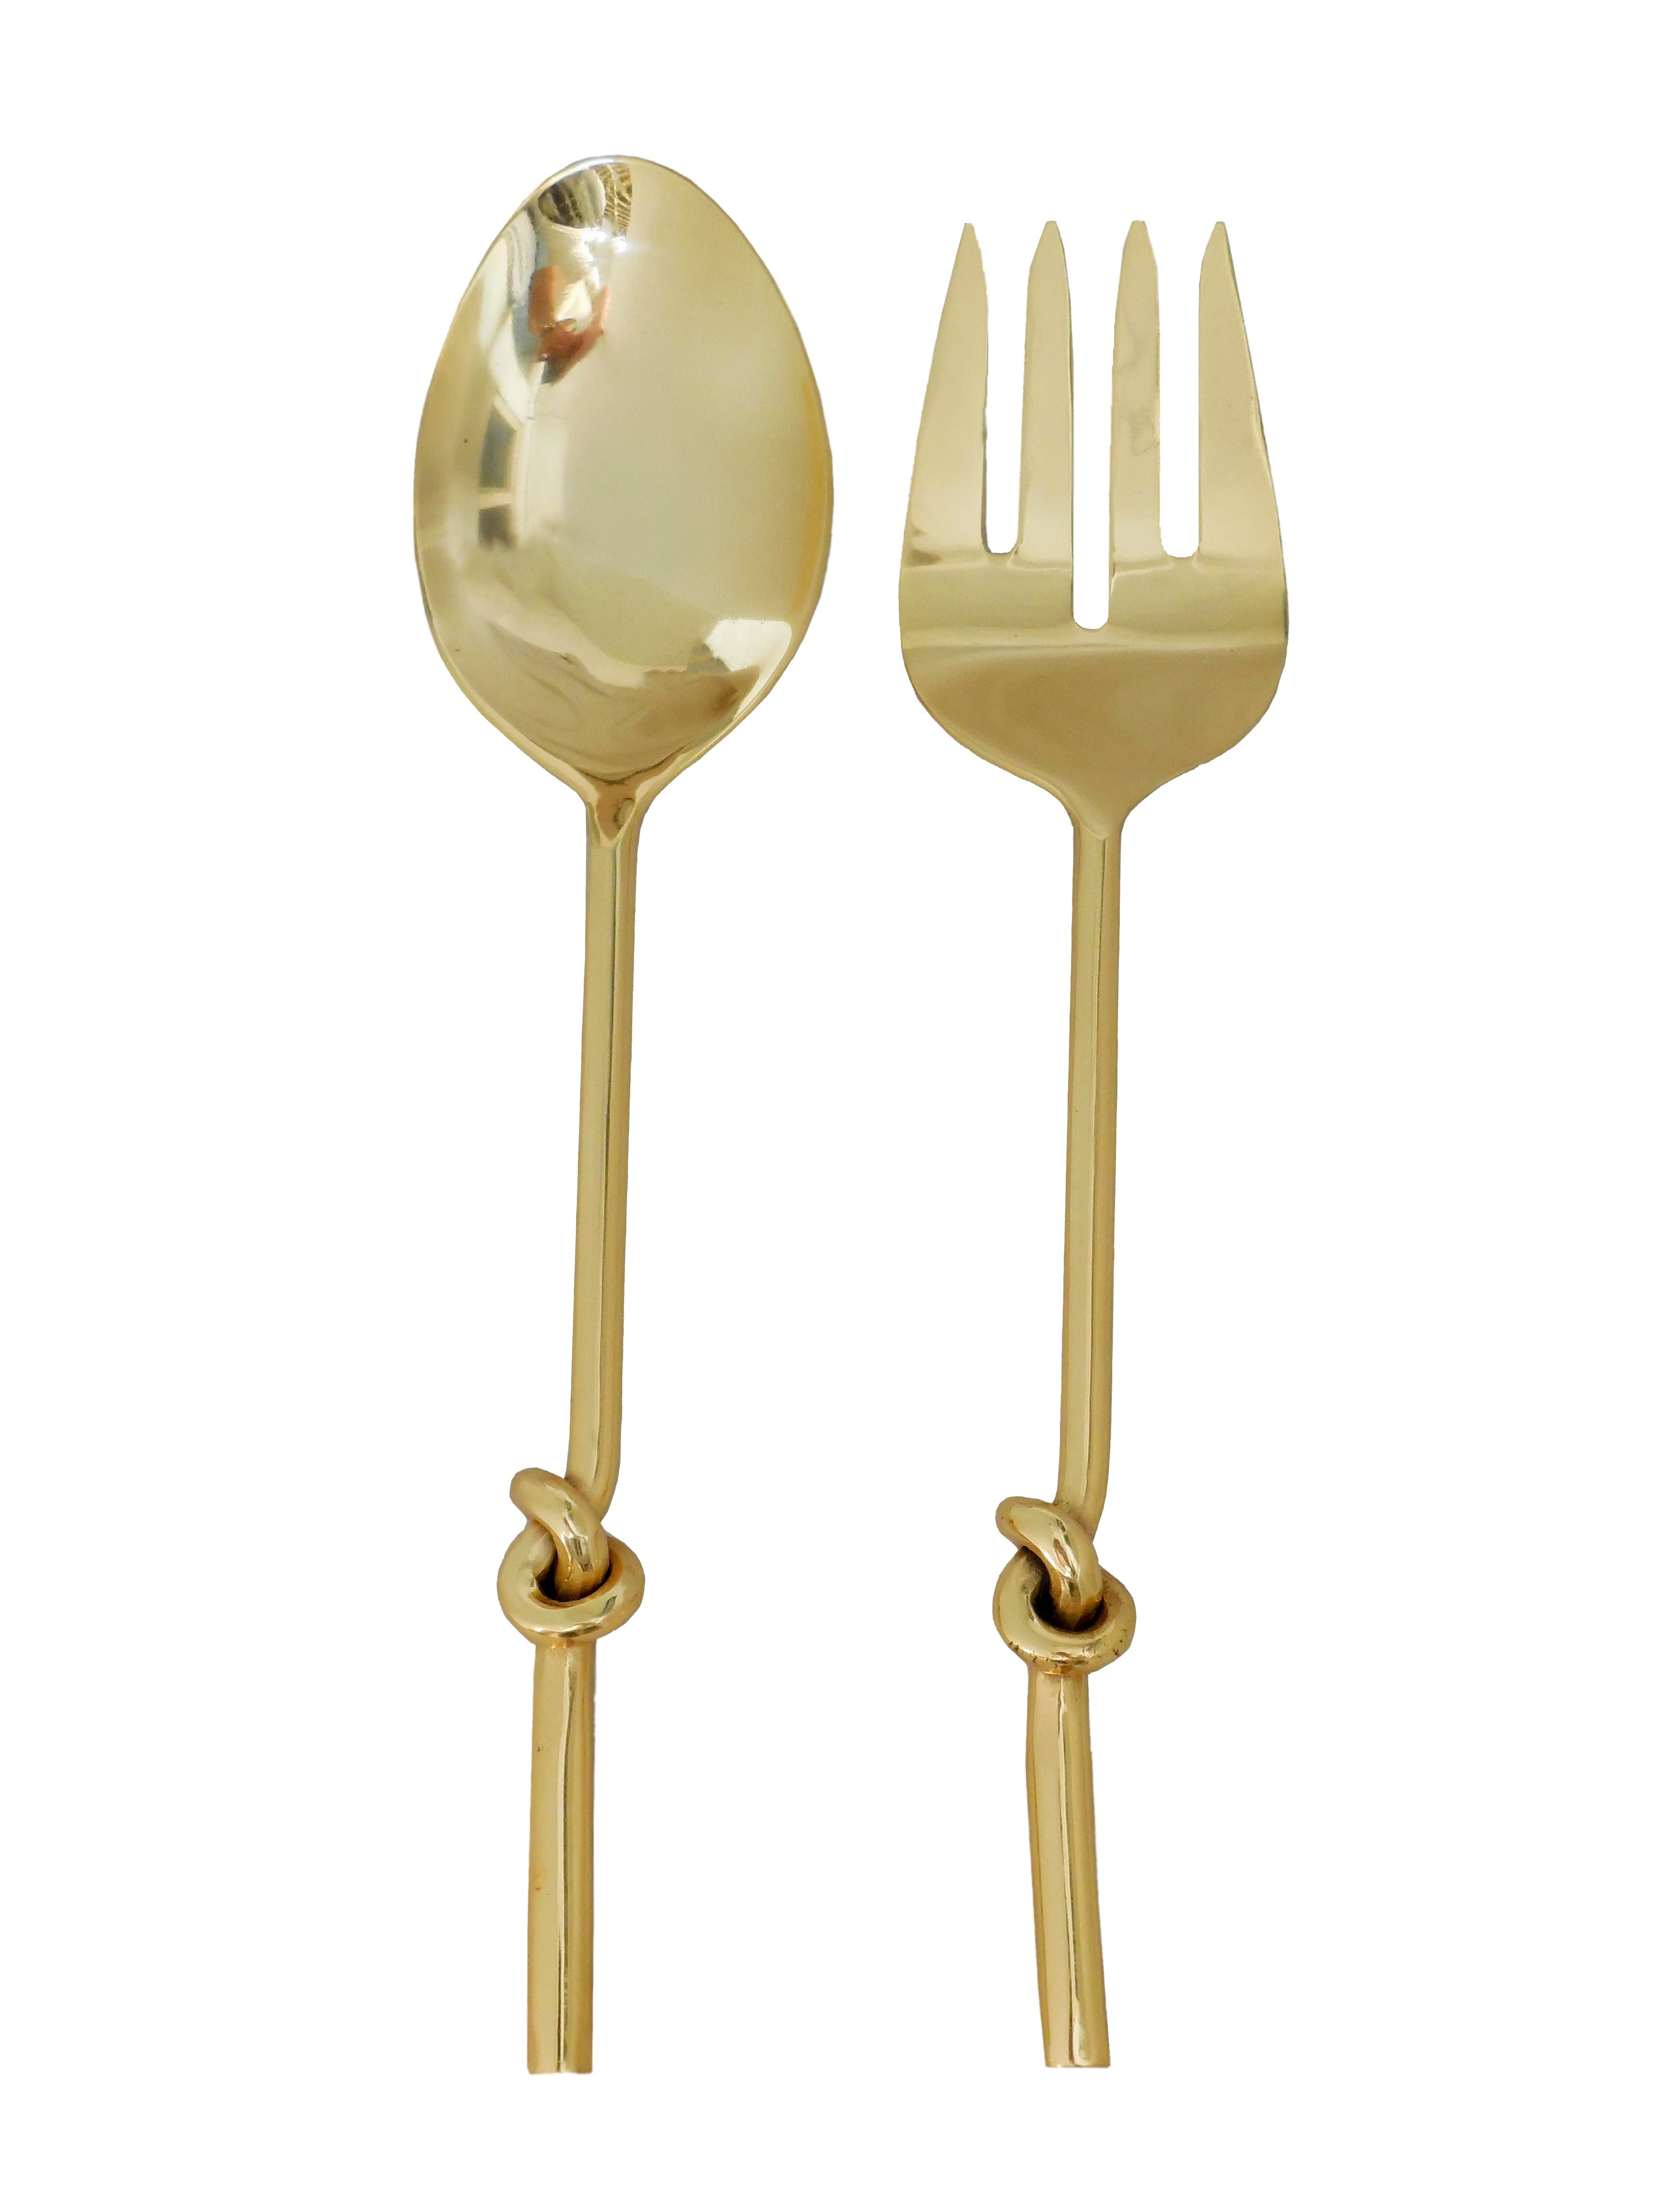 knot serving spoon 2 pcs set 1 pcs spoon and 1 pcs fork gold finish steel